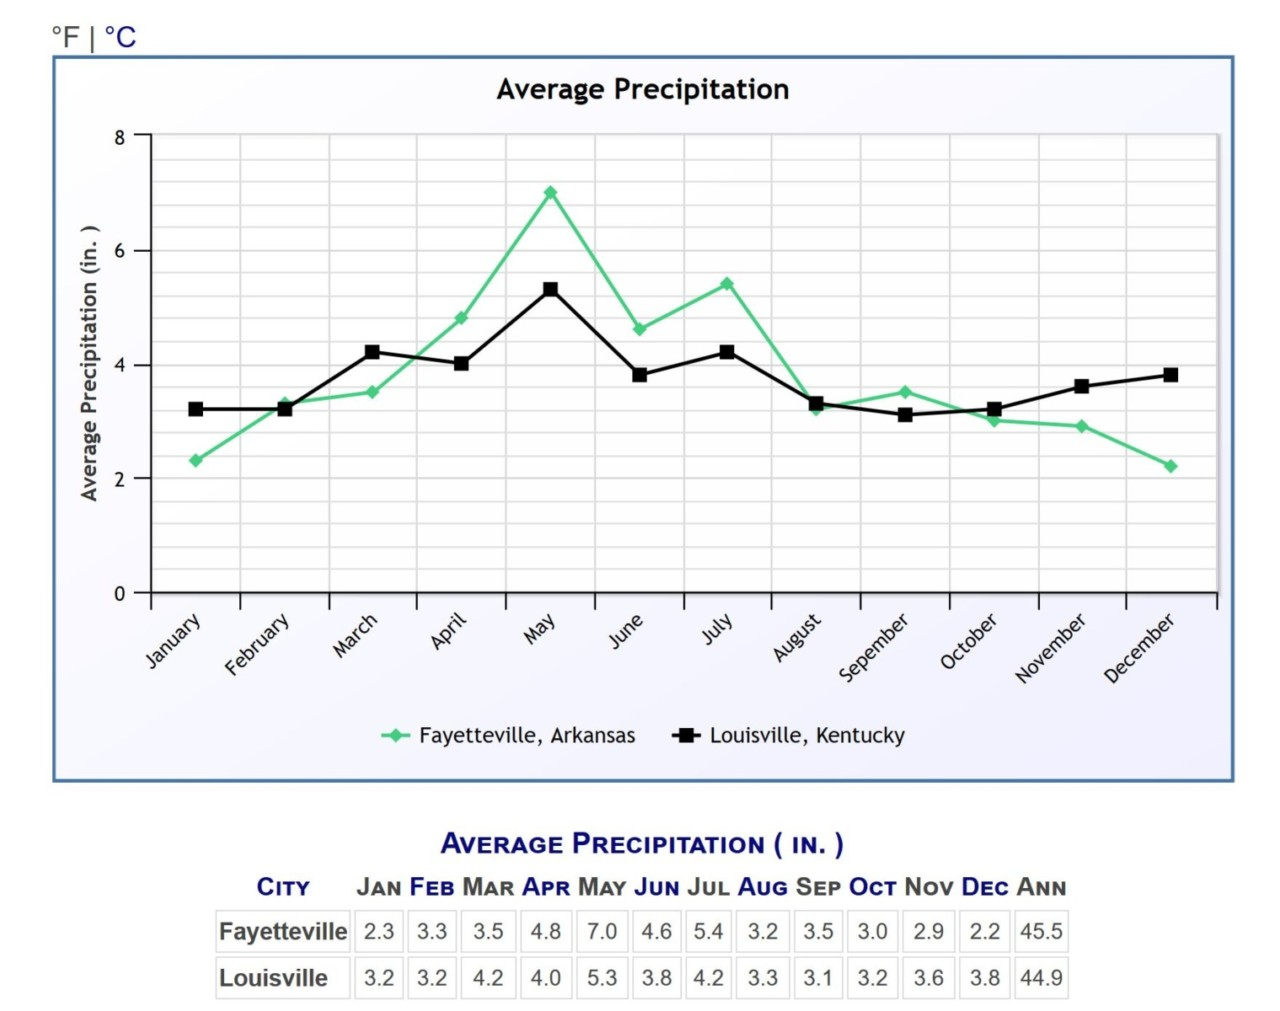 Anually Louisville and Fayetteville get similar amounts of precipitation, but it varies a bit by month.